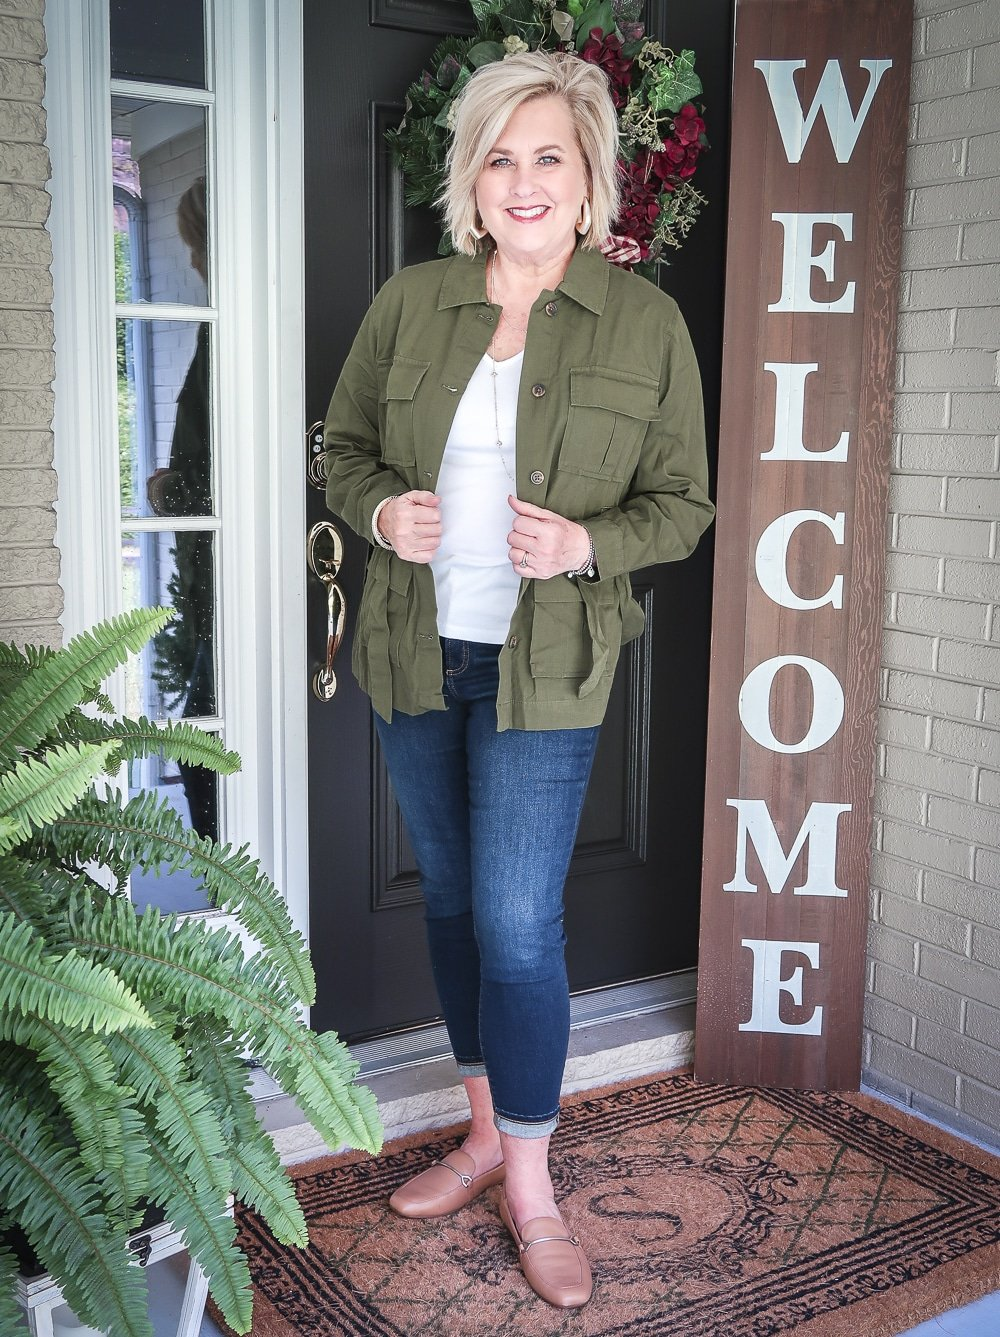 Fashion Blogger 50 Is Not Old is doing a Tuesday Try-On Session with Target and styling a green trucker jacket, a white v-neck tee shirt, and dark jeans from Chico's